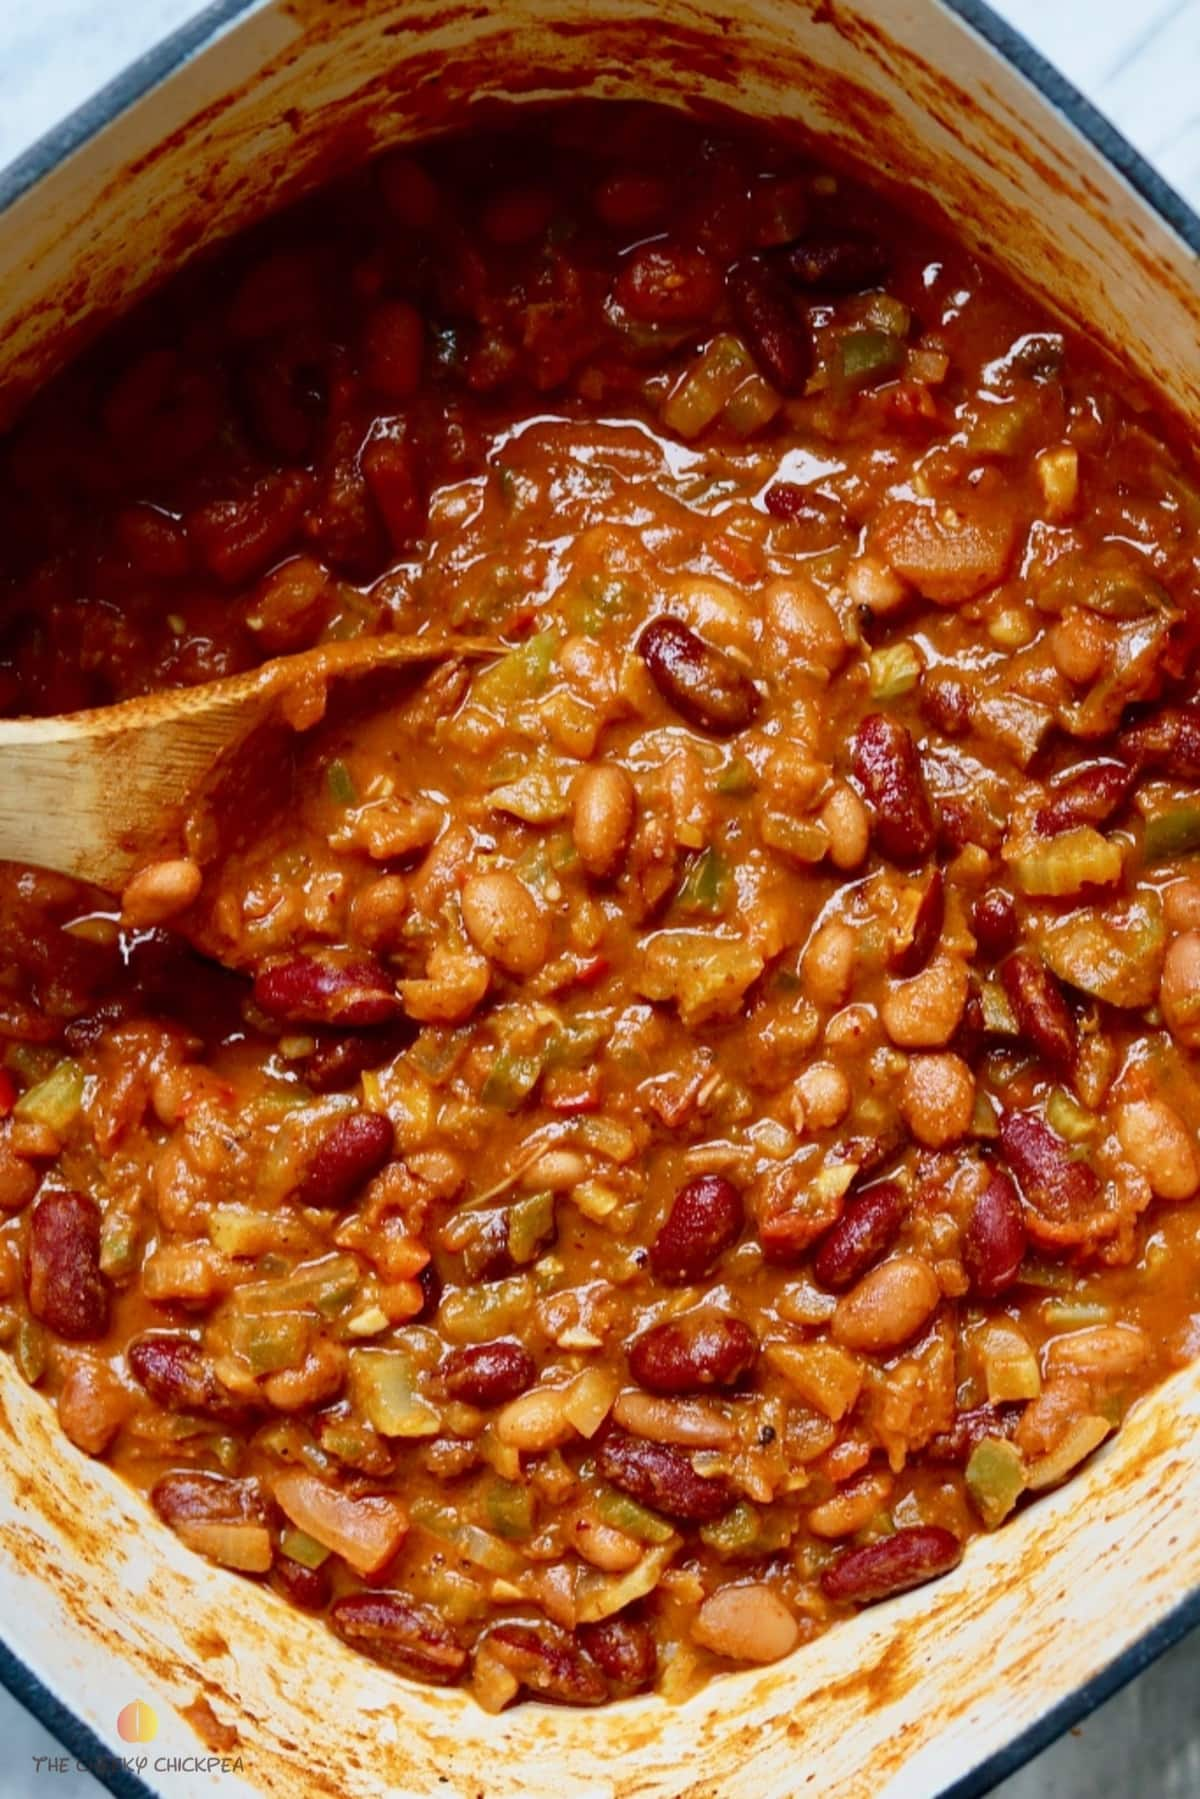 vegan Chili in a pot with a wooden spoon